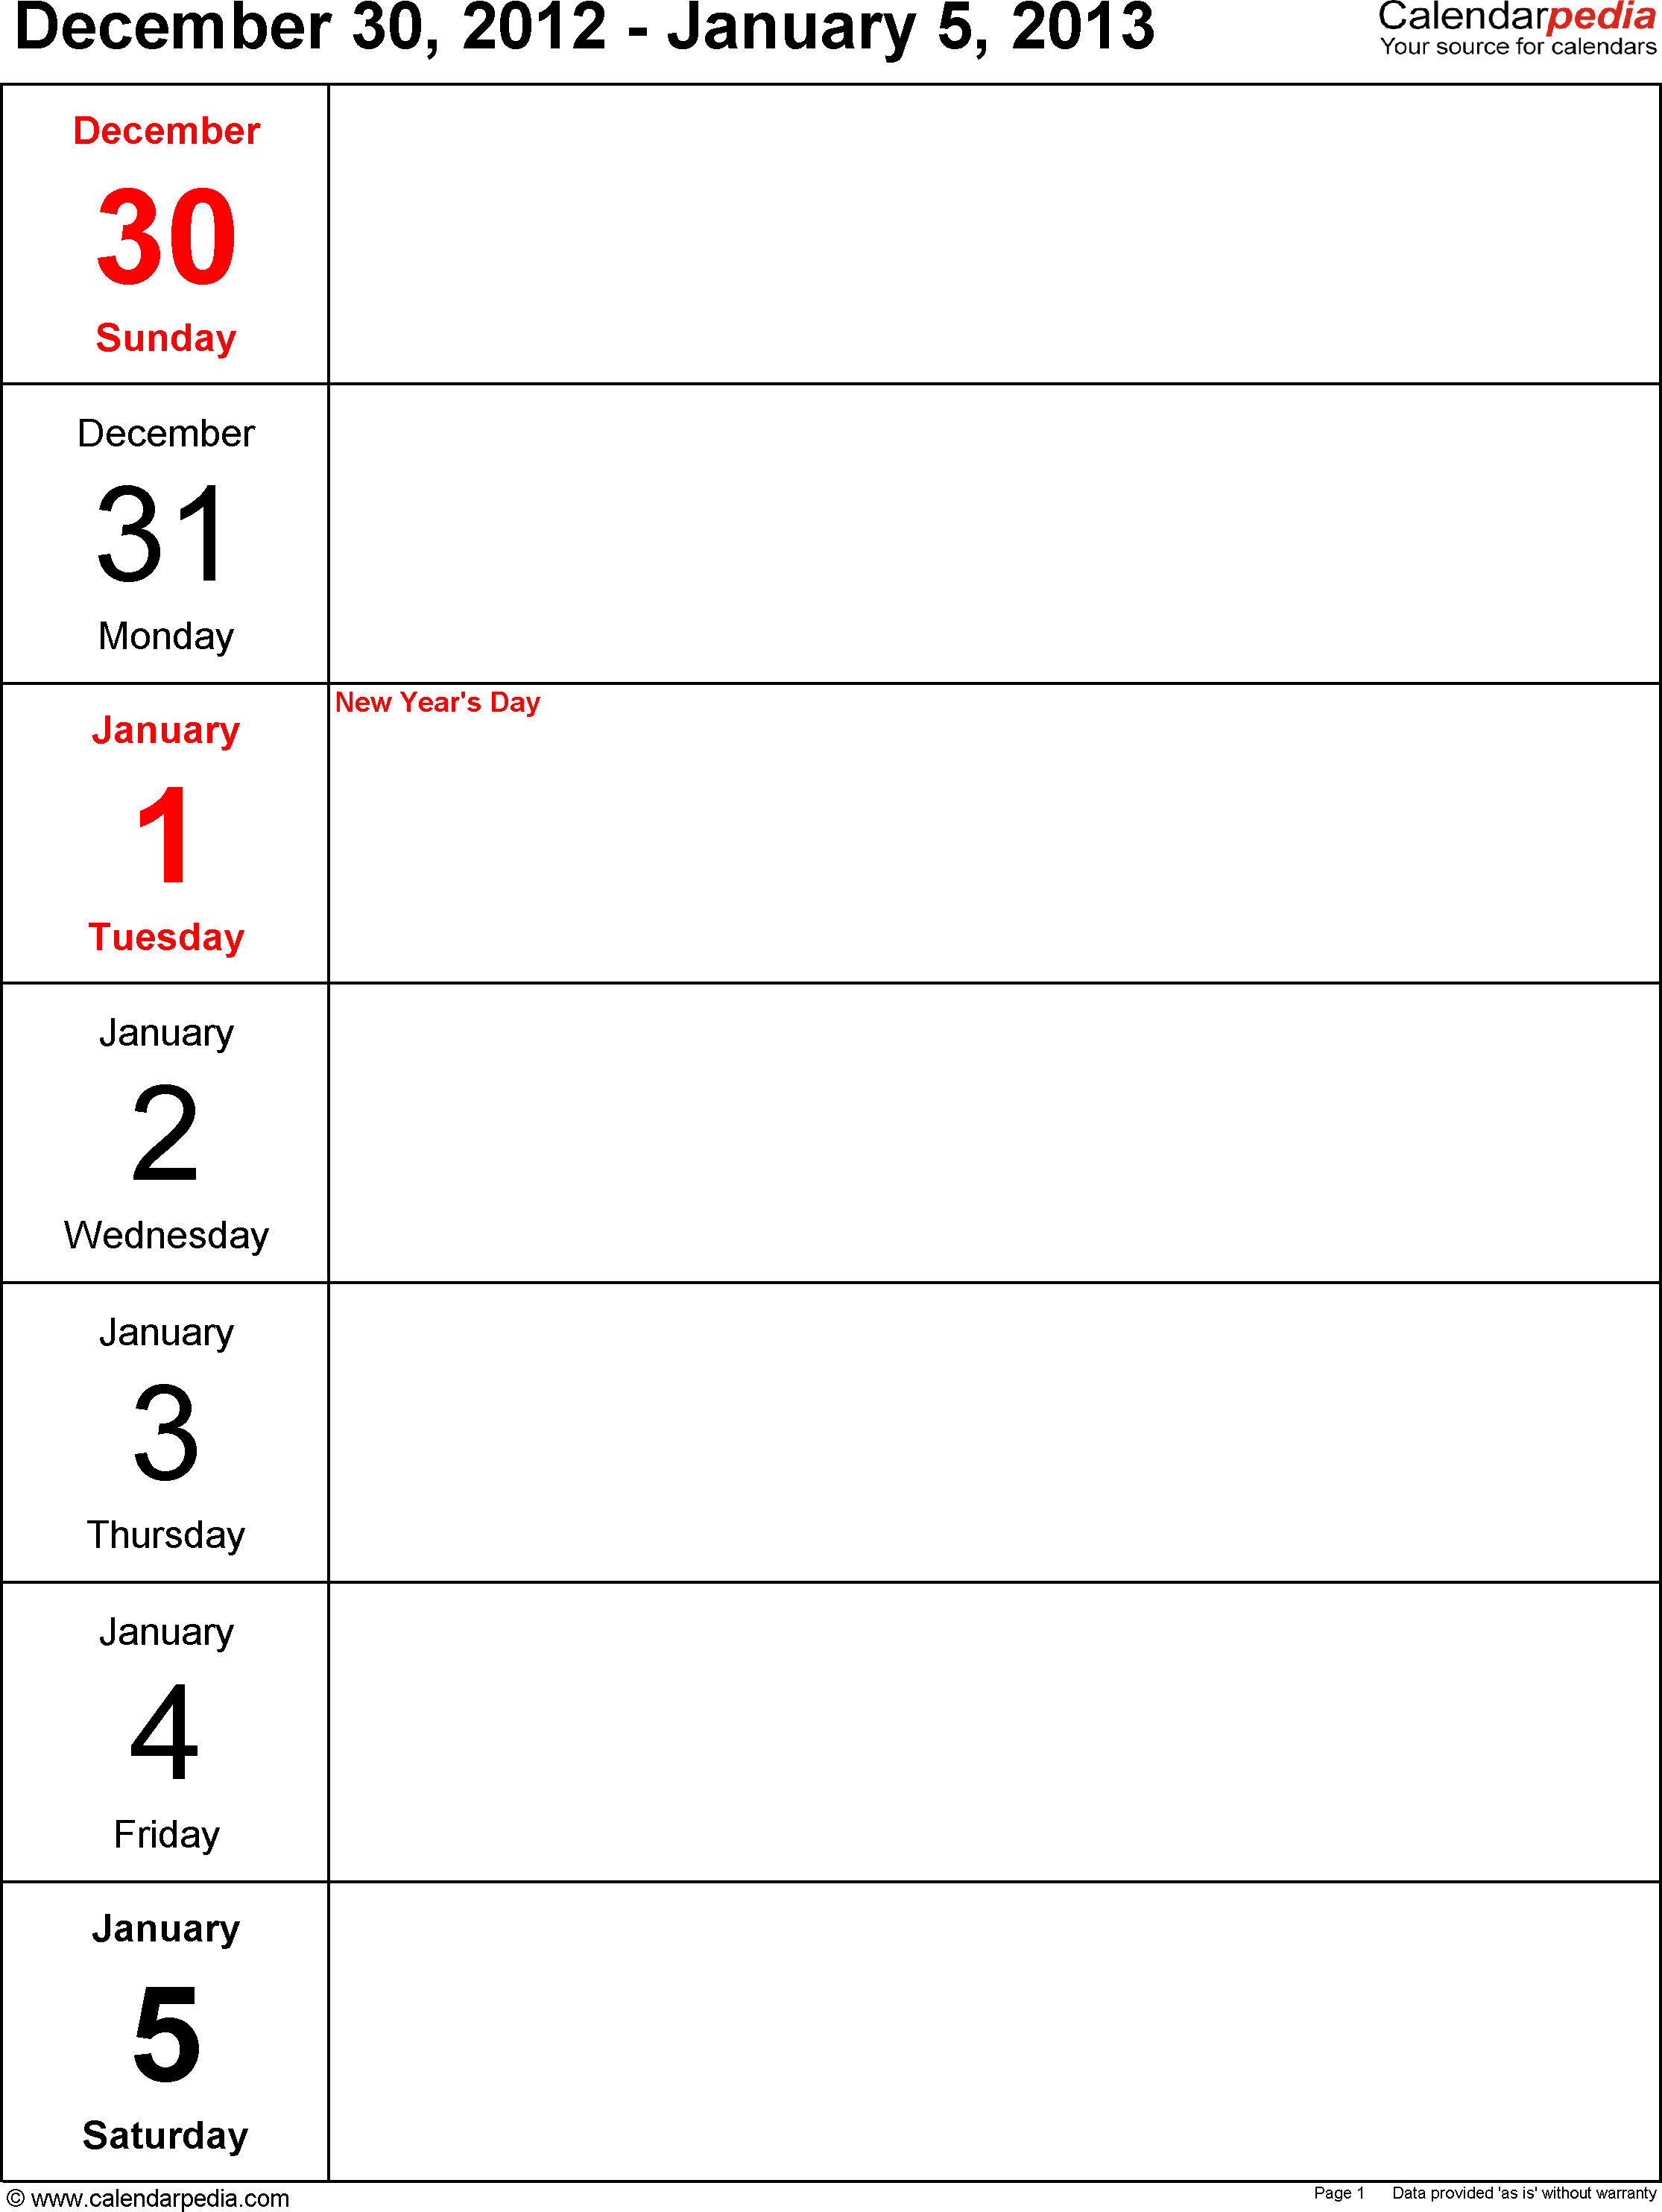 Weekly Calendars 2013 for Excel - 4 free printable templates